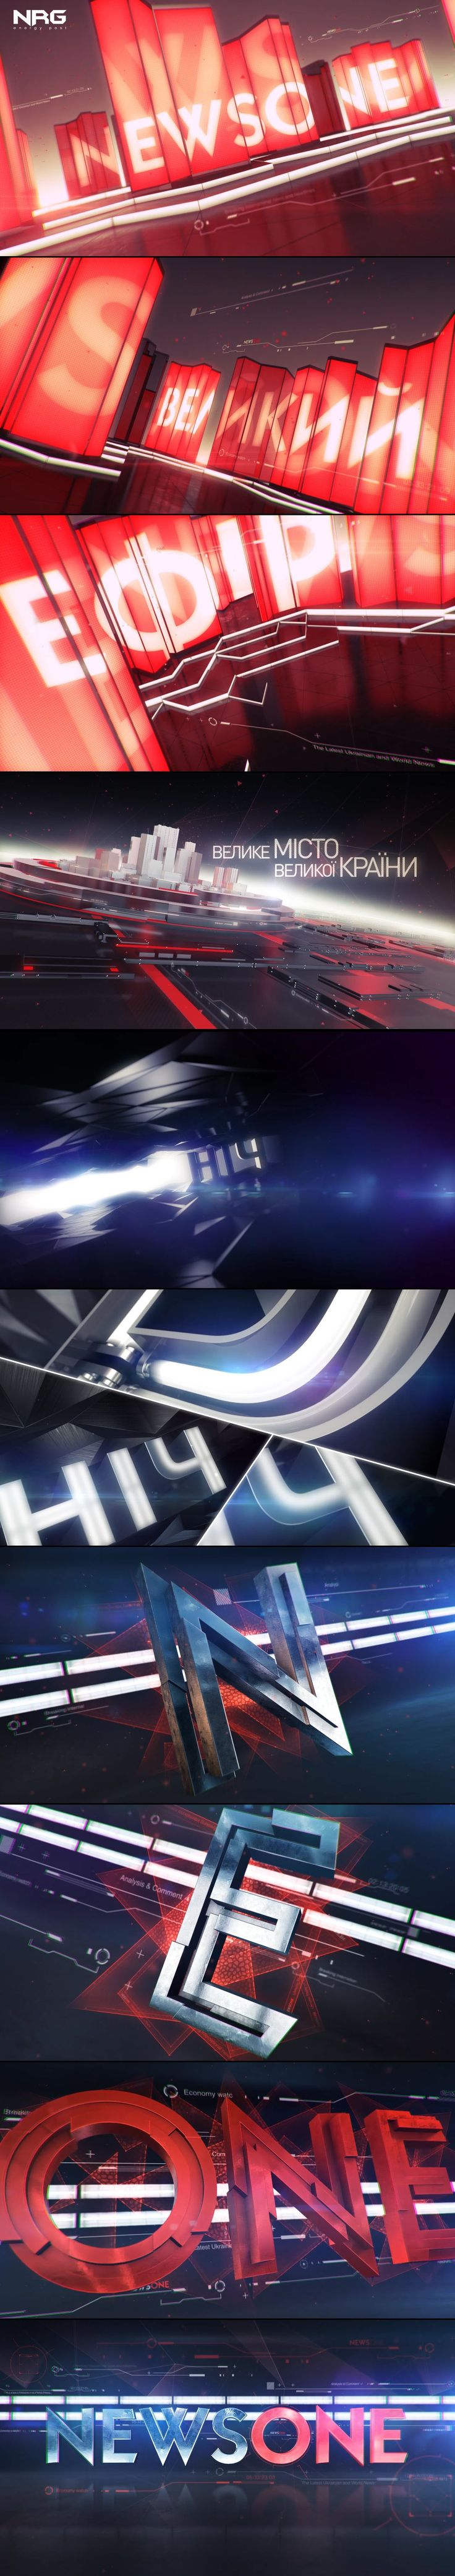 """Check out this @Behance project: """"NEWSONE / On-Air Design"""" https://www.behance.net/gallery/48605885/NEWSONE-On-Air-Design"""